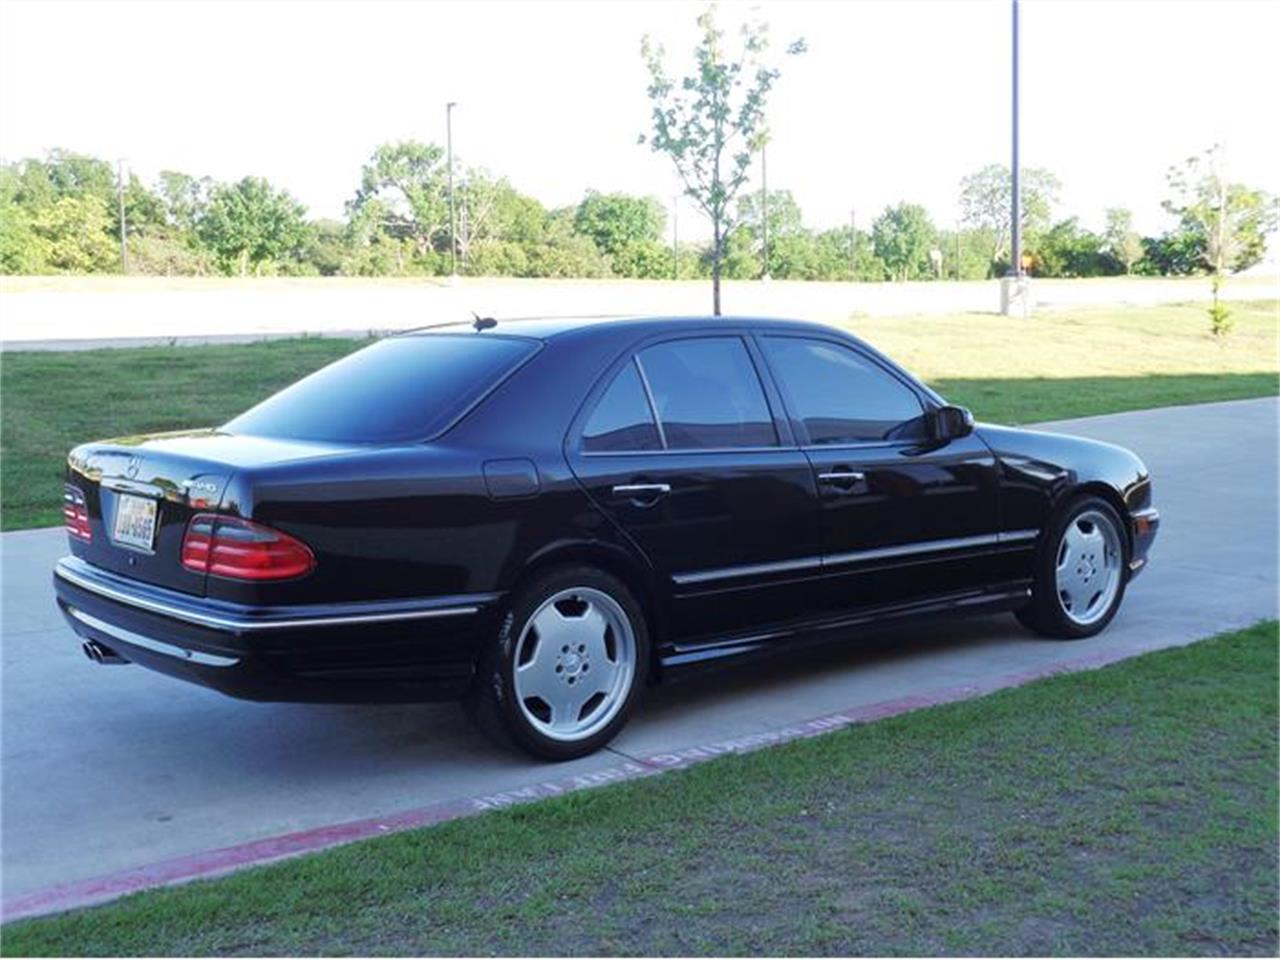 Large Picture of '01 Mercedes-Benz E55 located in Texas - $12,200.00 Offered by Enthusiast Motor Cars of Texas - HUJ9